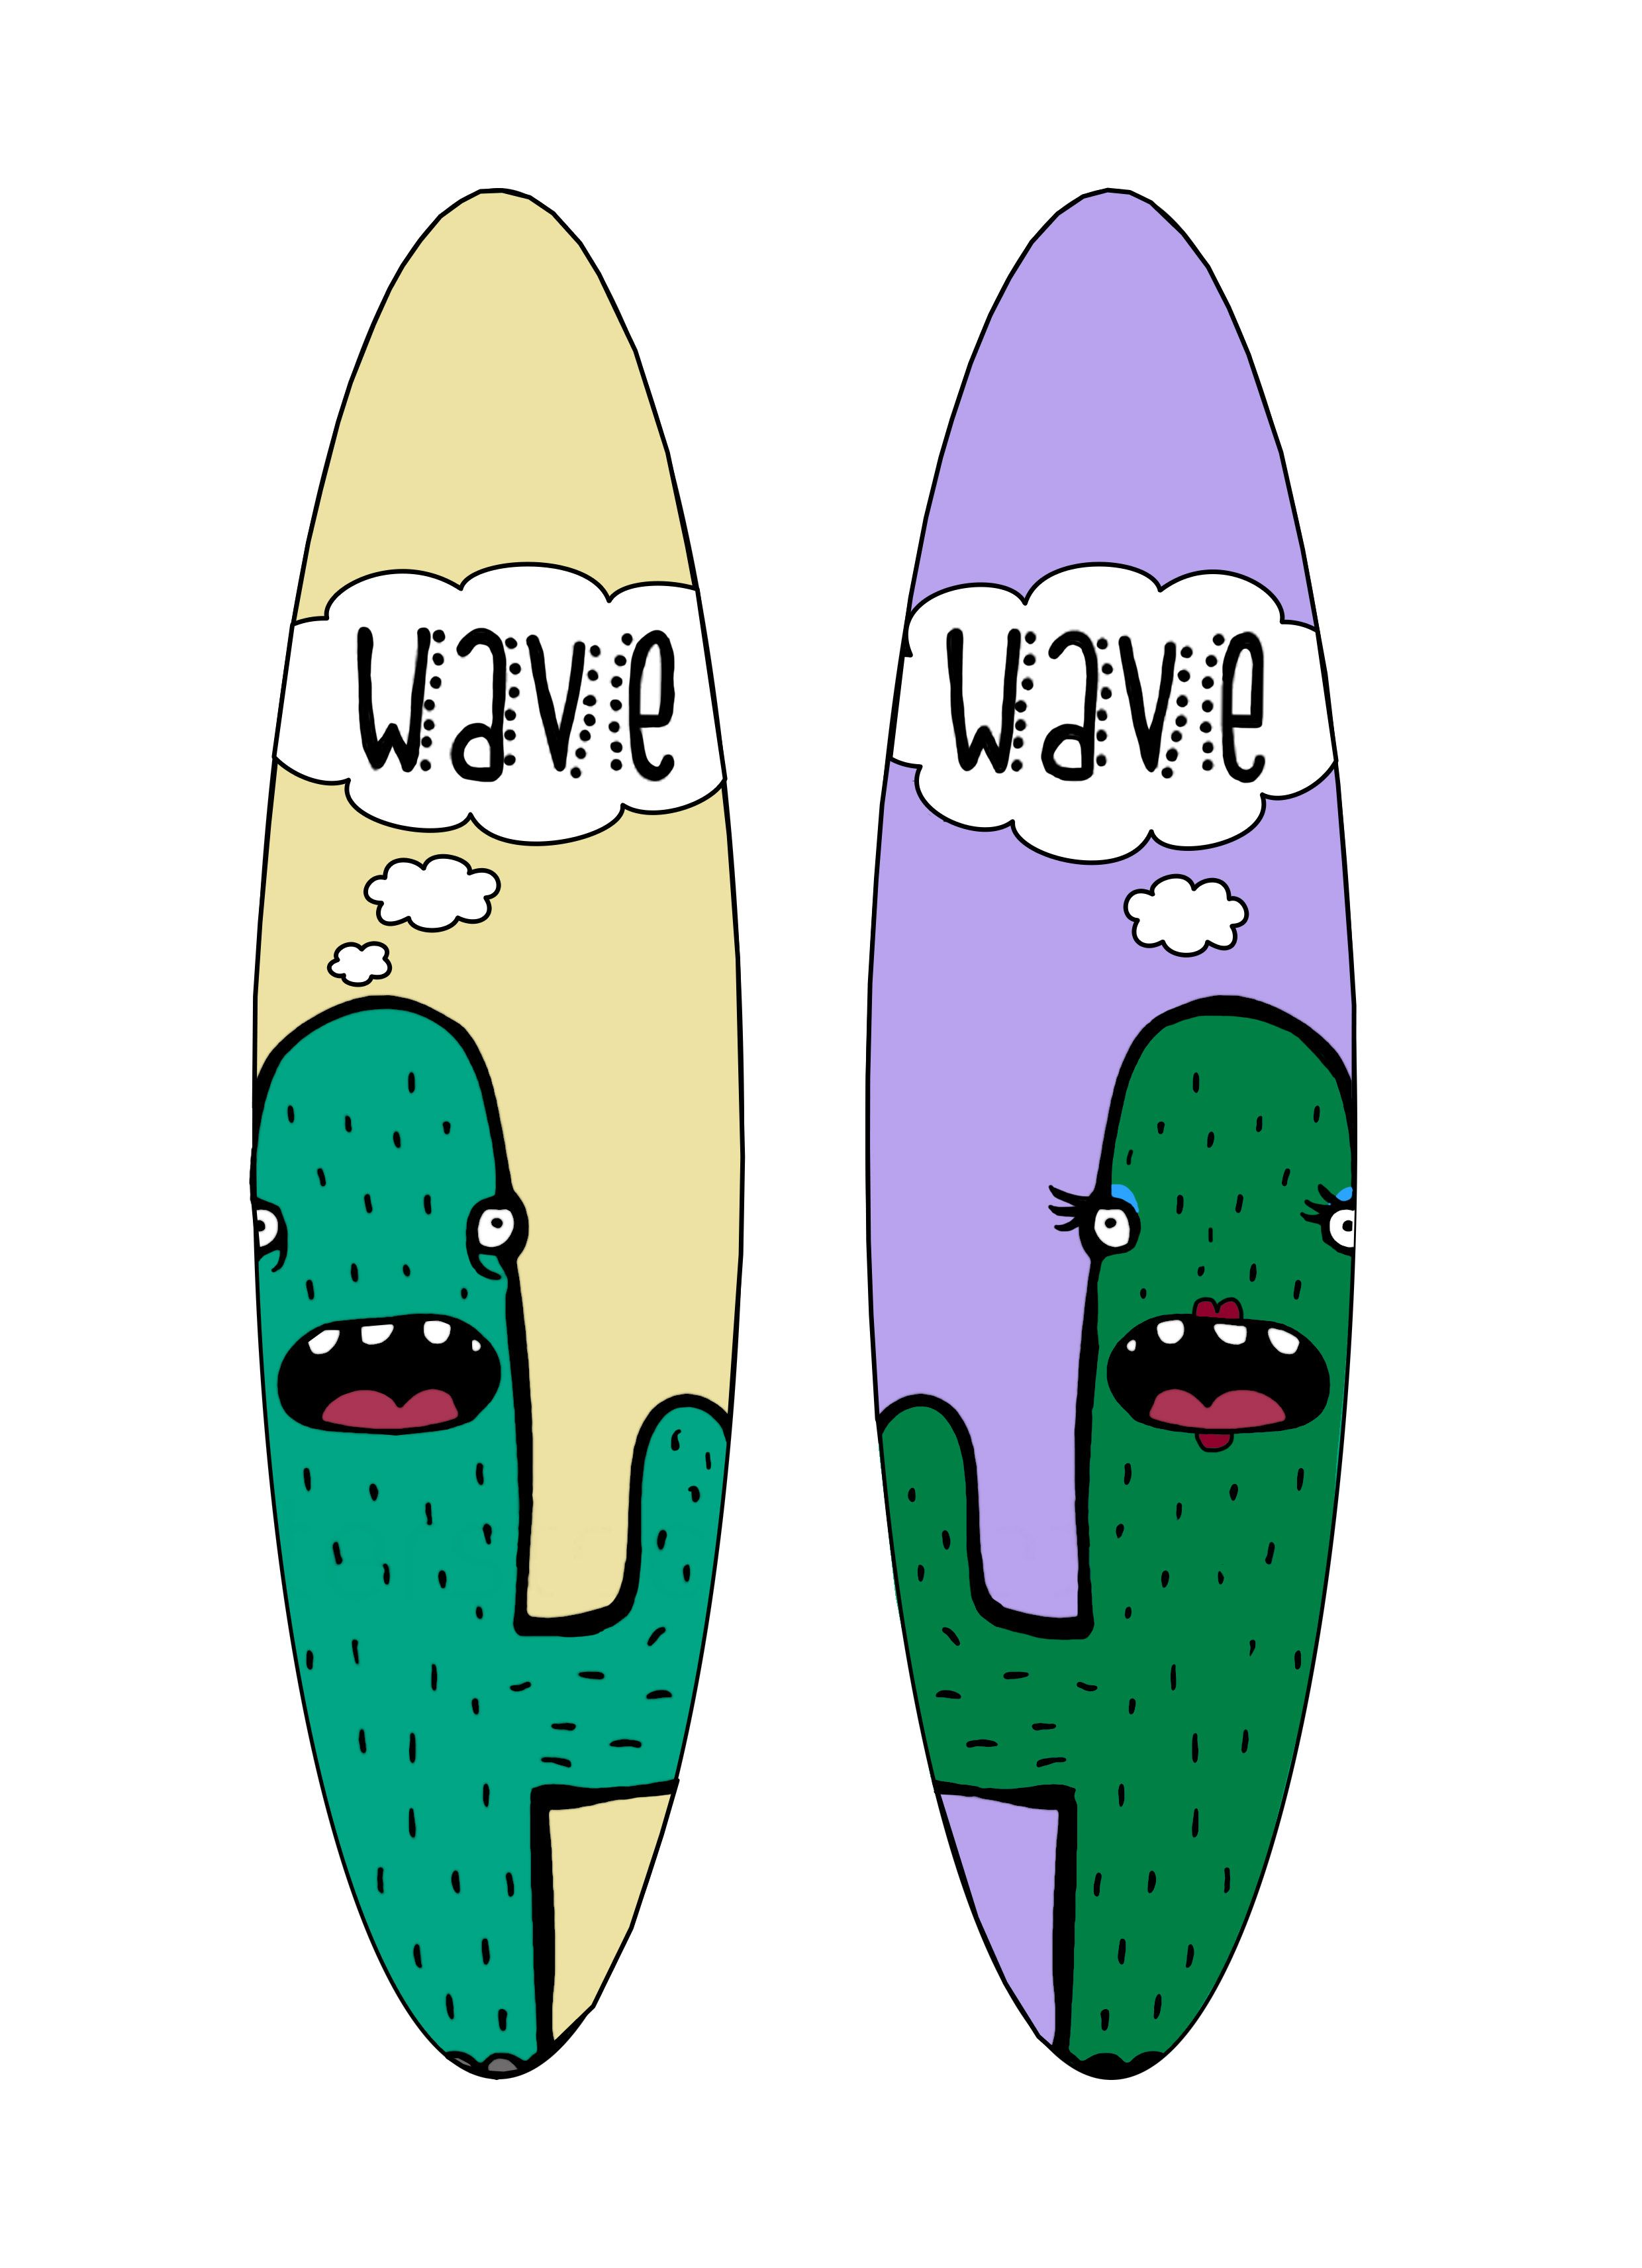 13th personal wave surfboard designs, using vectors and paintbrush tools